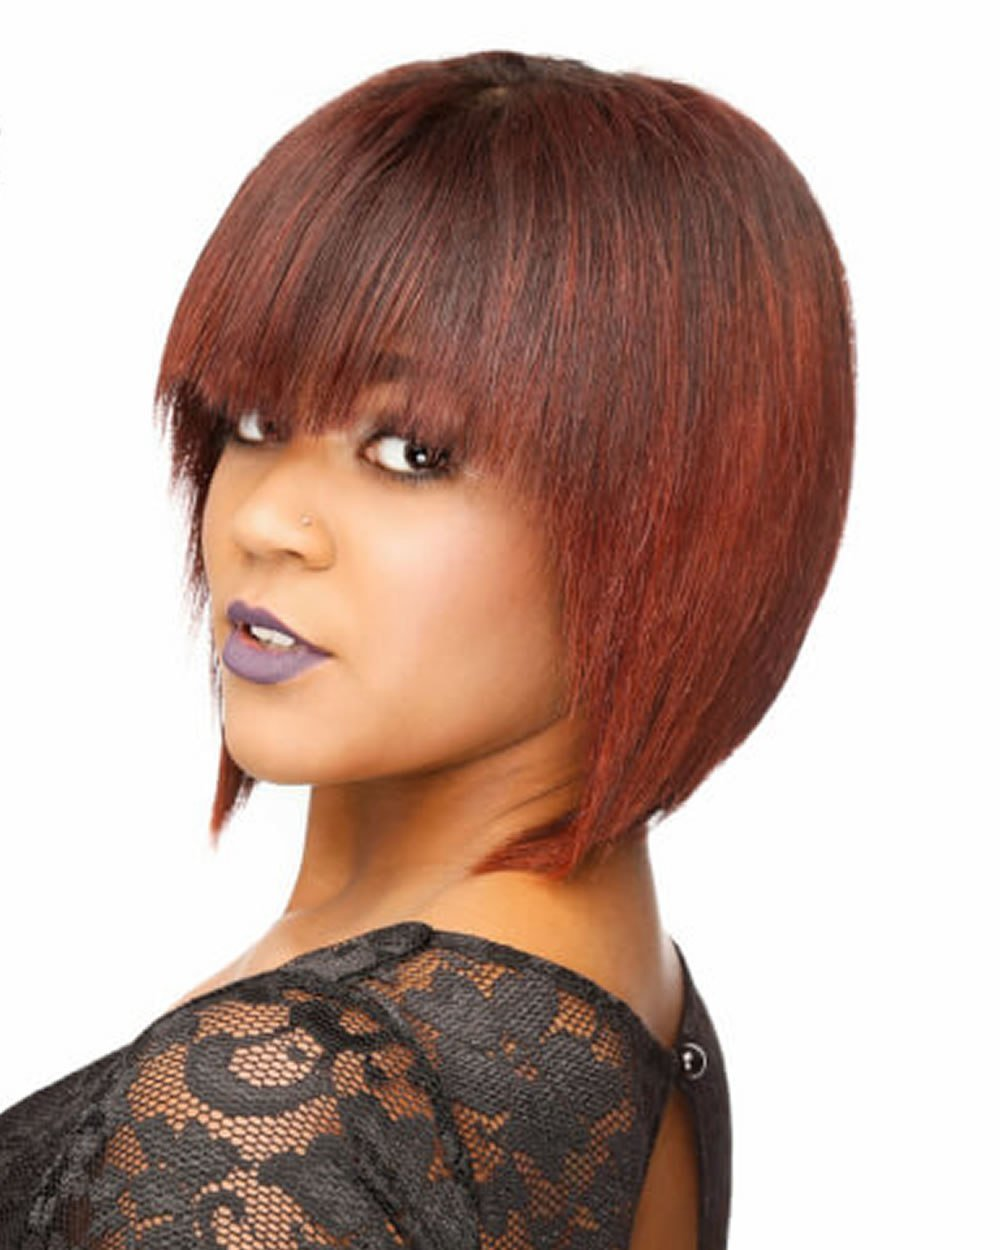 The Best 33 Best Short Bob Haircuts With Bangs And Layered Bob Pictures